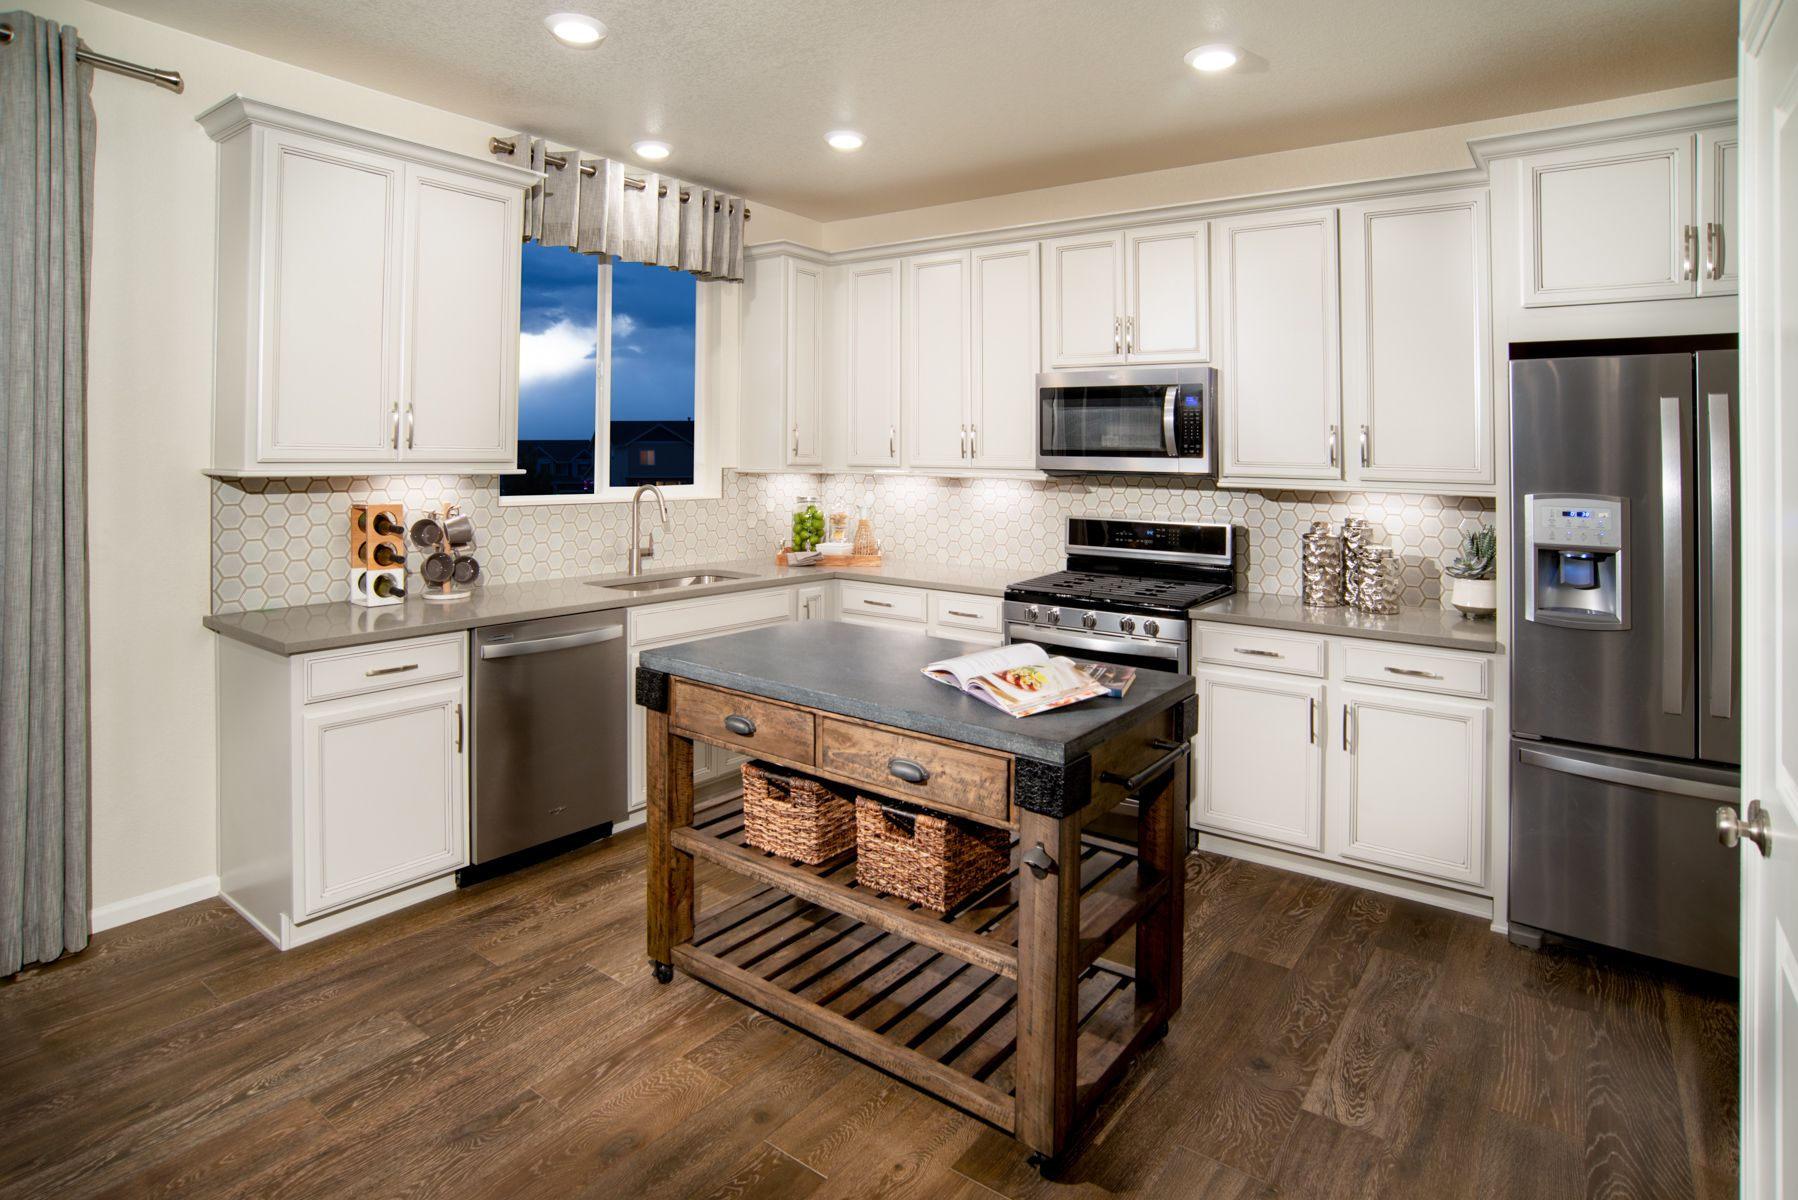 Kitchen featured in the Plan 1923 Modeled By KB Home in Fort Collins-Loveland, CO